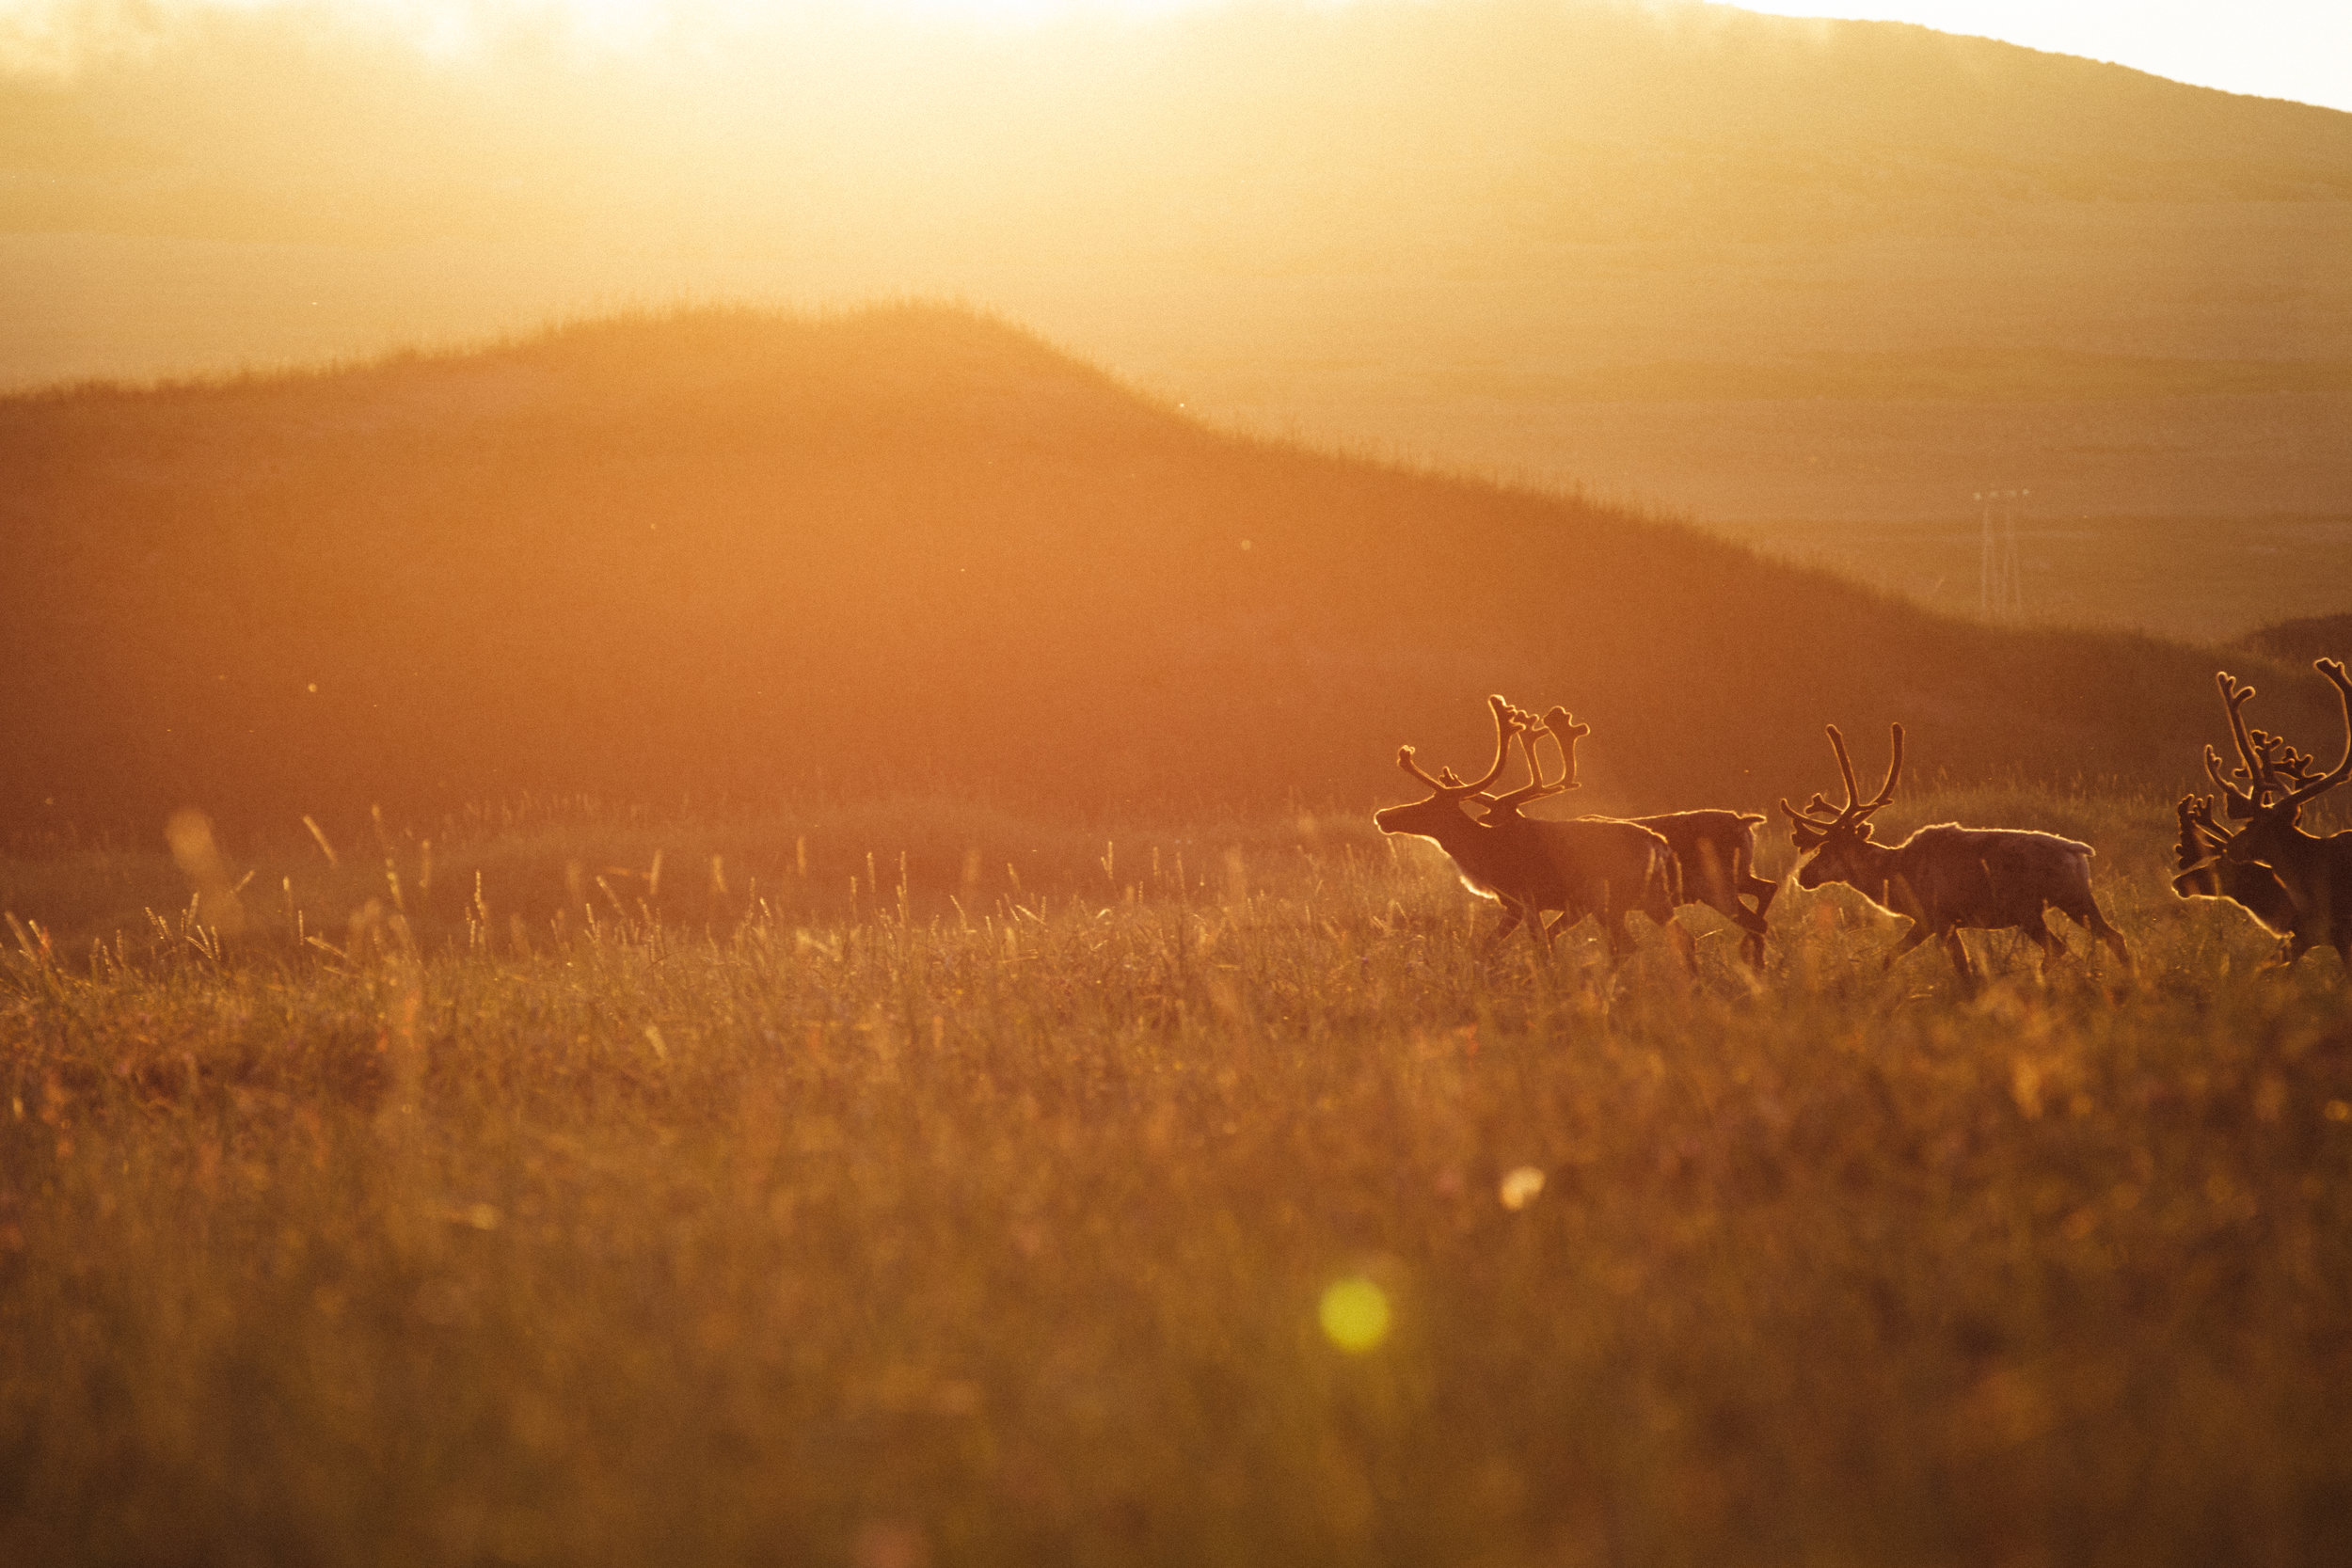 From our Summer in Norway- watching reindeer run around during the everlasting sunset .